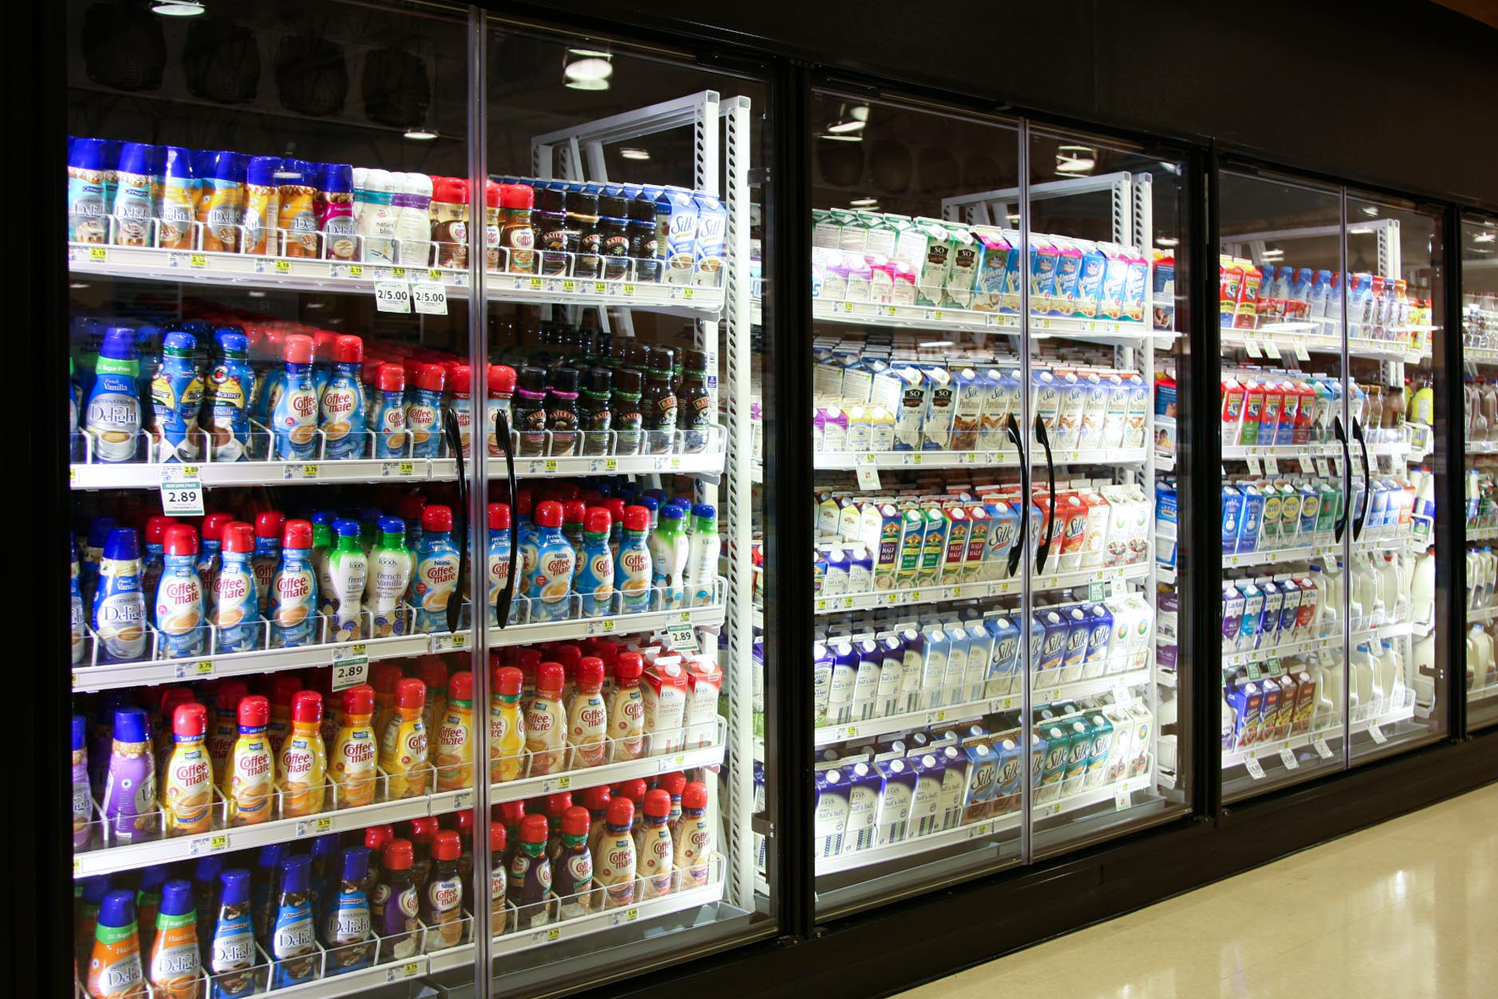 milk dairy shelving